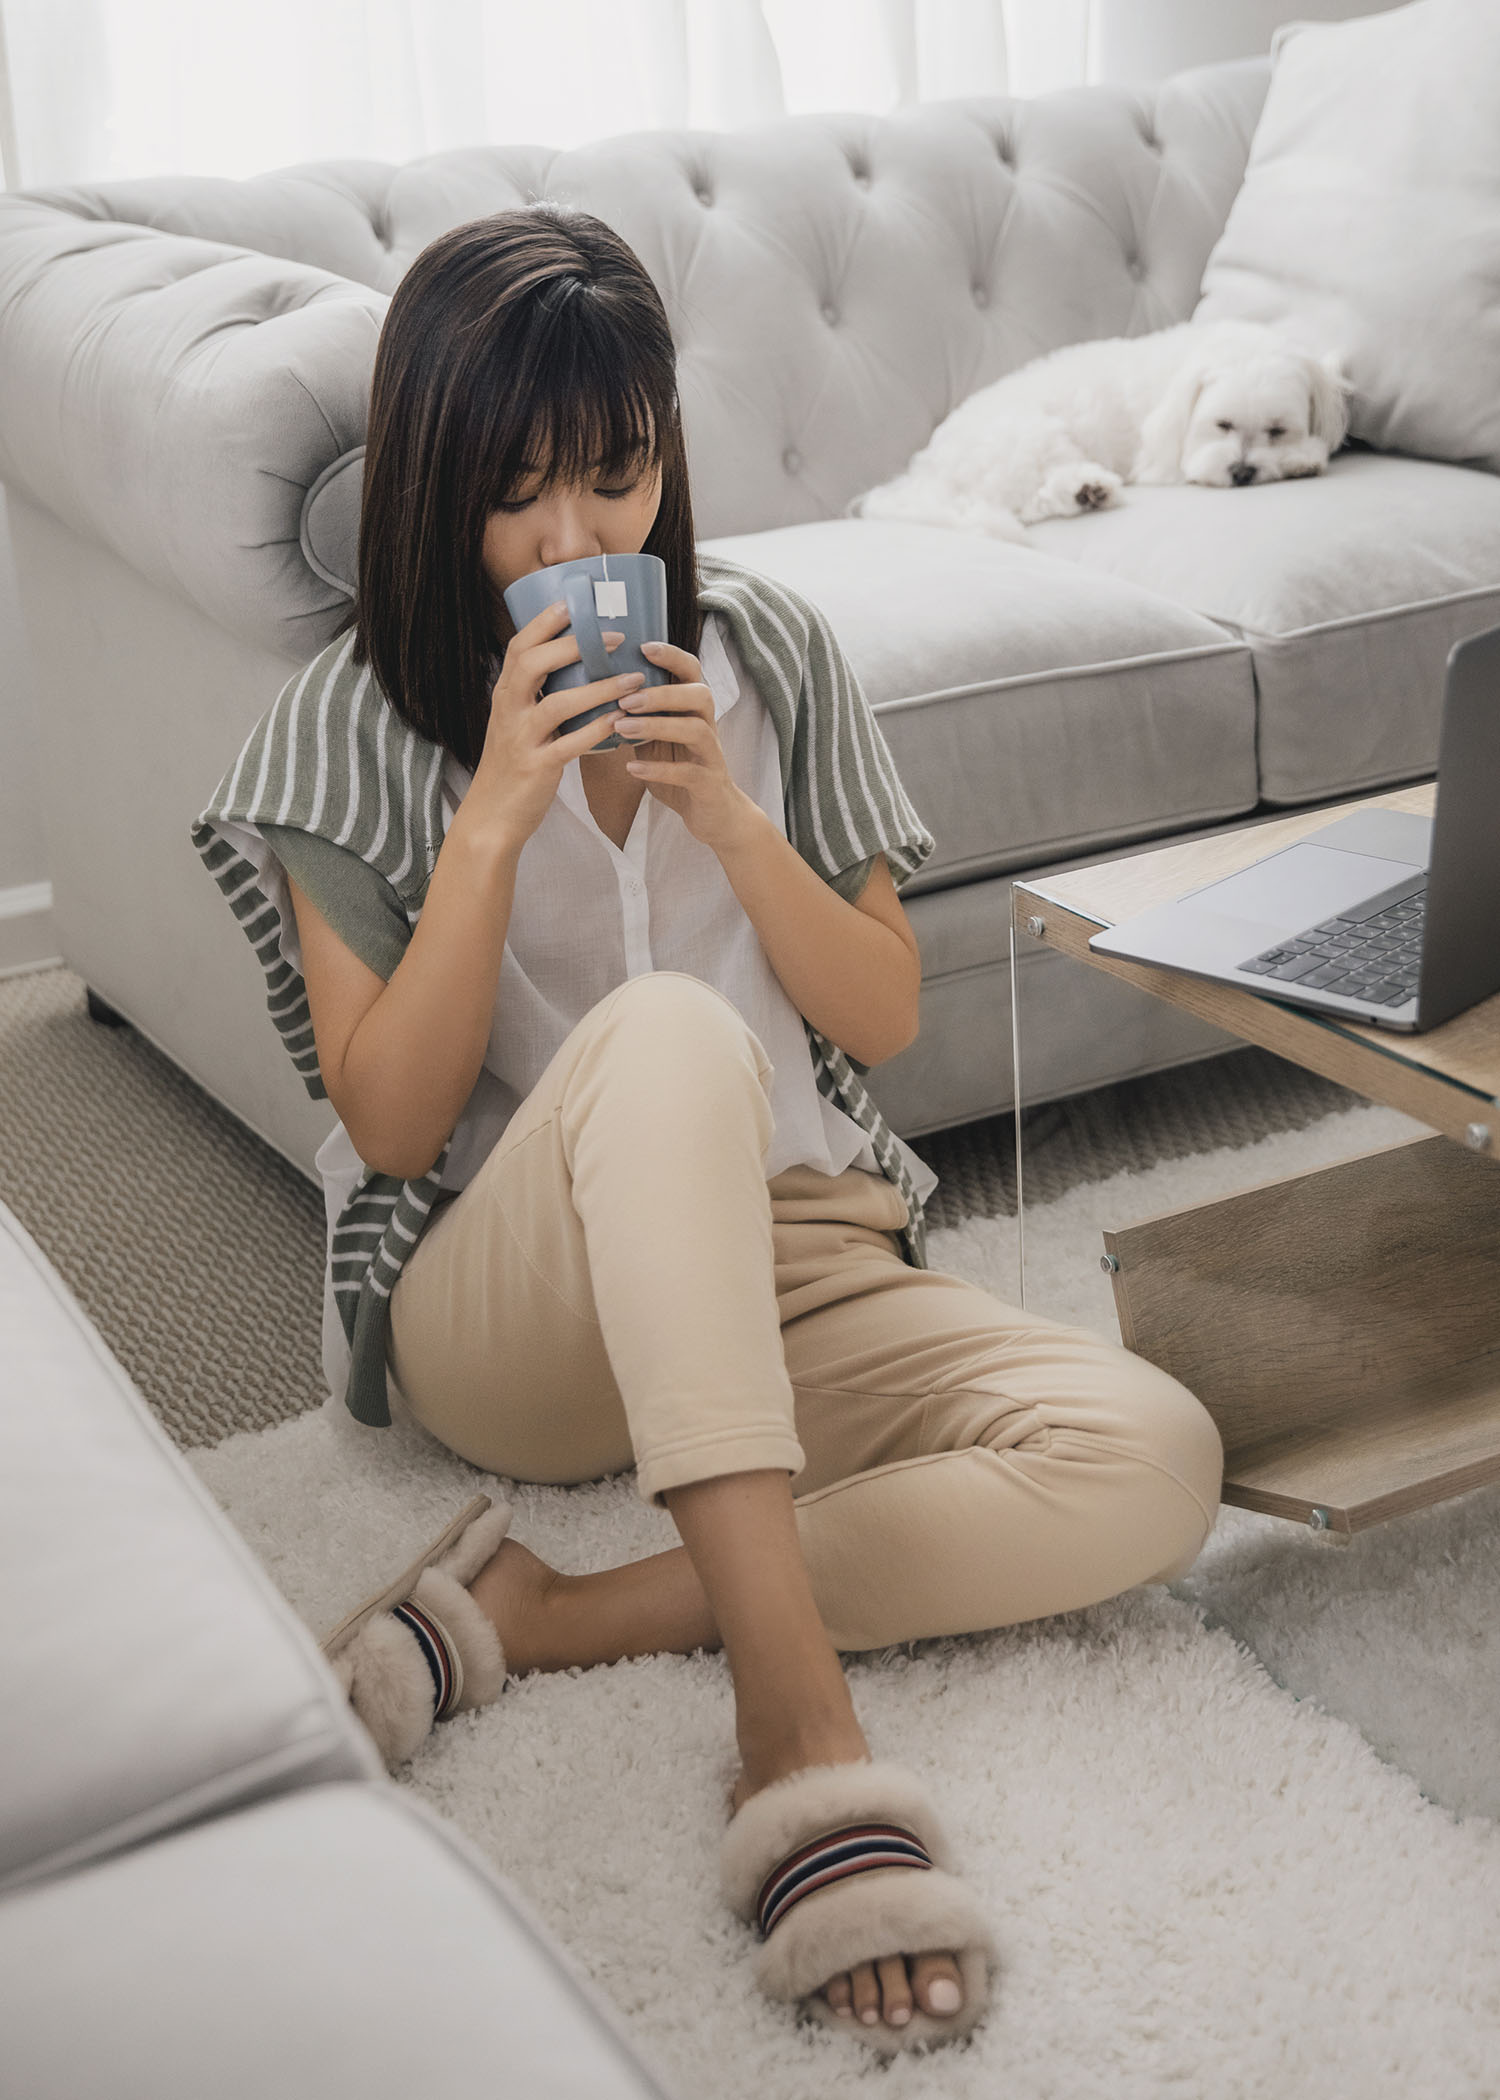 Jenny Tsang of Tsangtastic styling sweater sweatpants outfit with fluffy fuzzy slippers comfortable home outfit